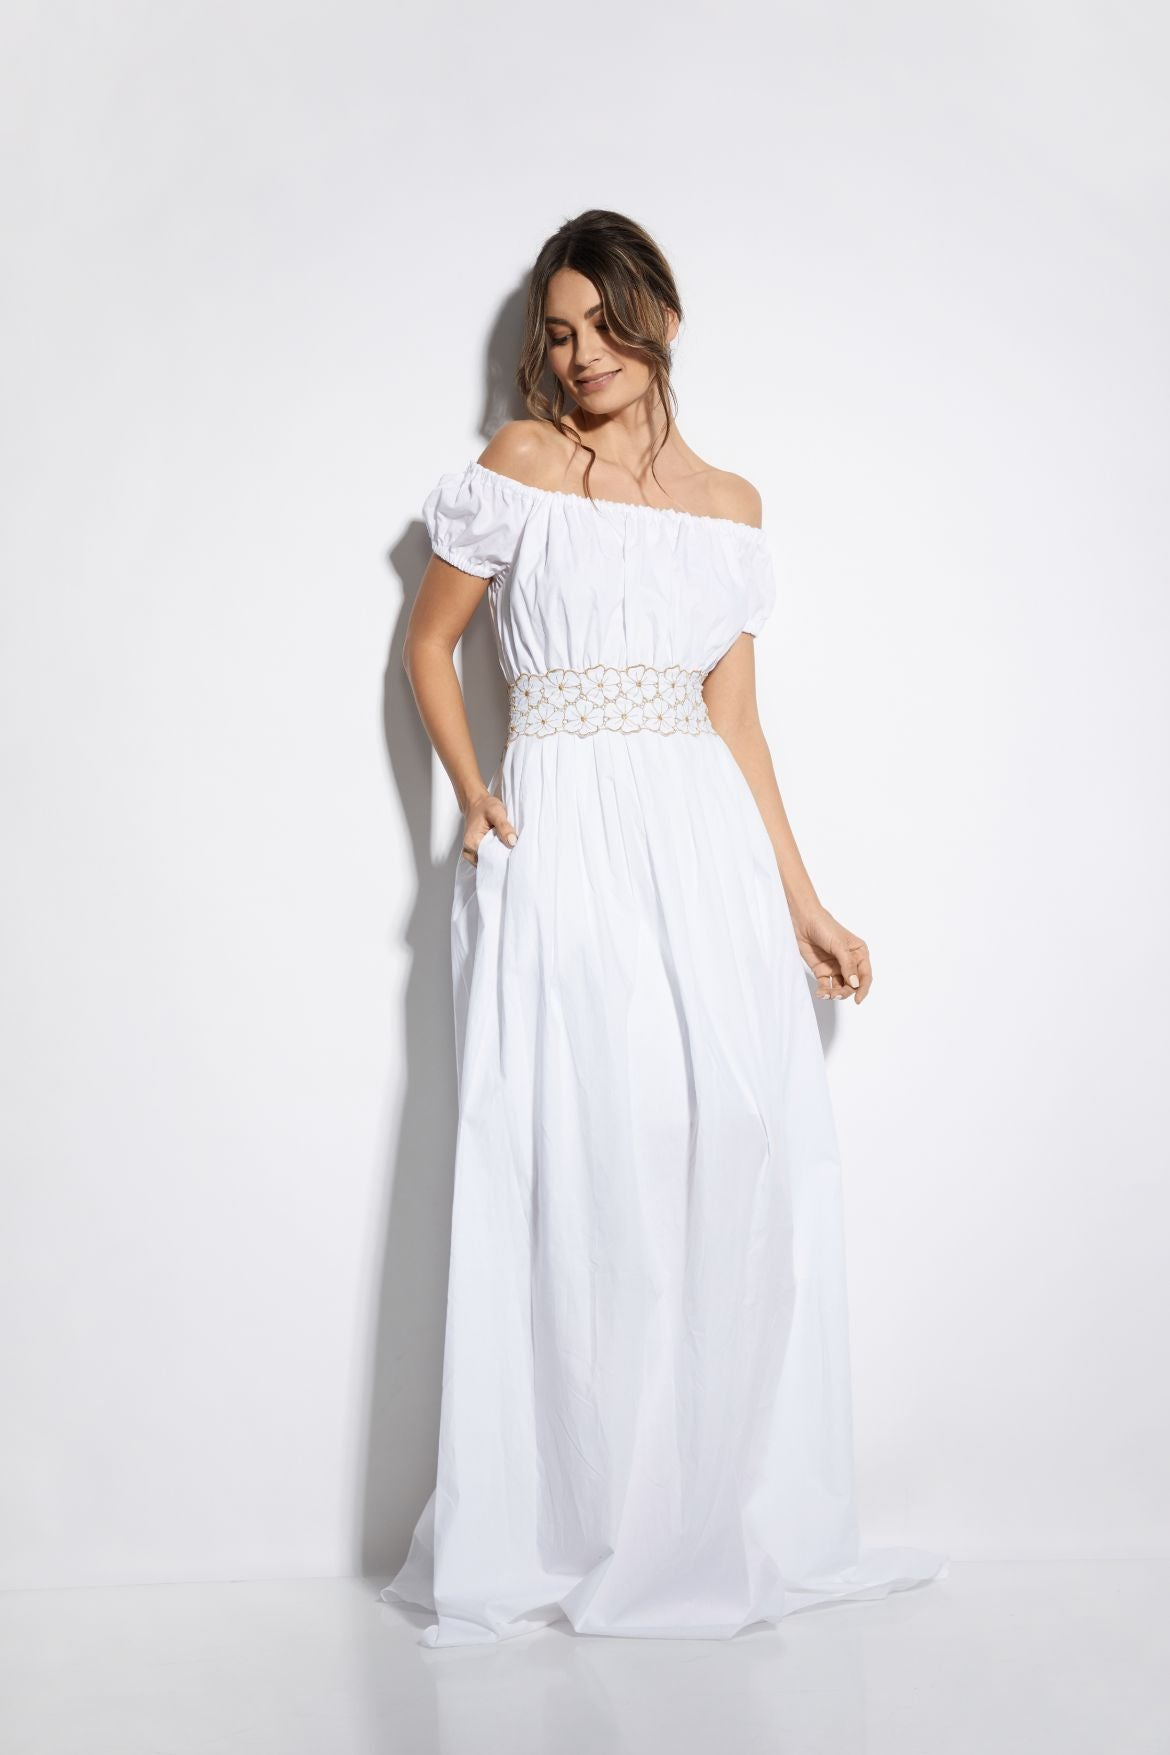 Soleil D'été Dress in White/Gold - I.D. Sarrieri